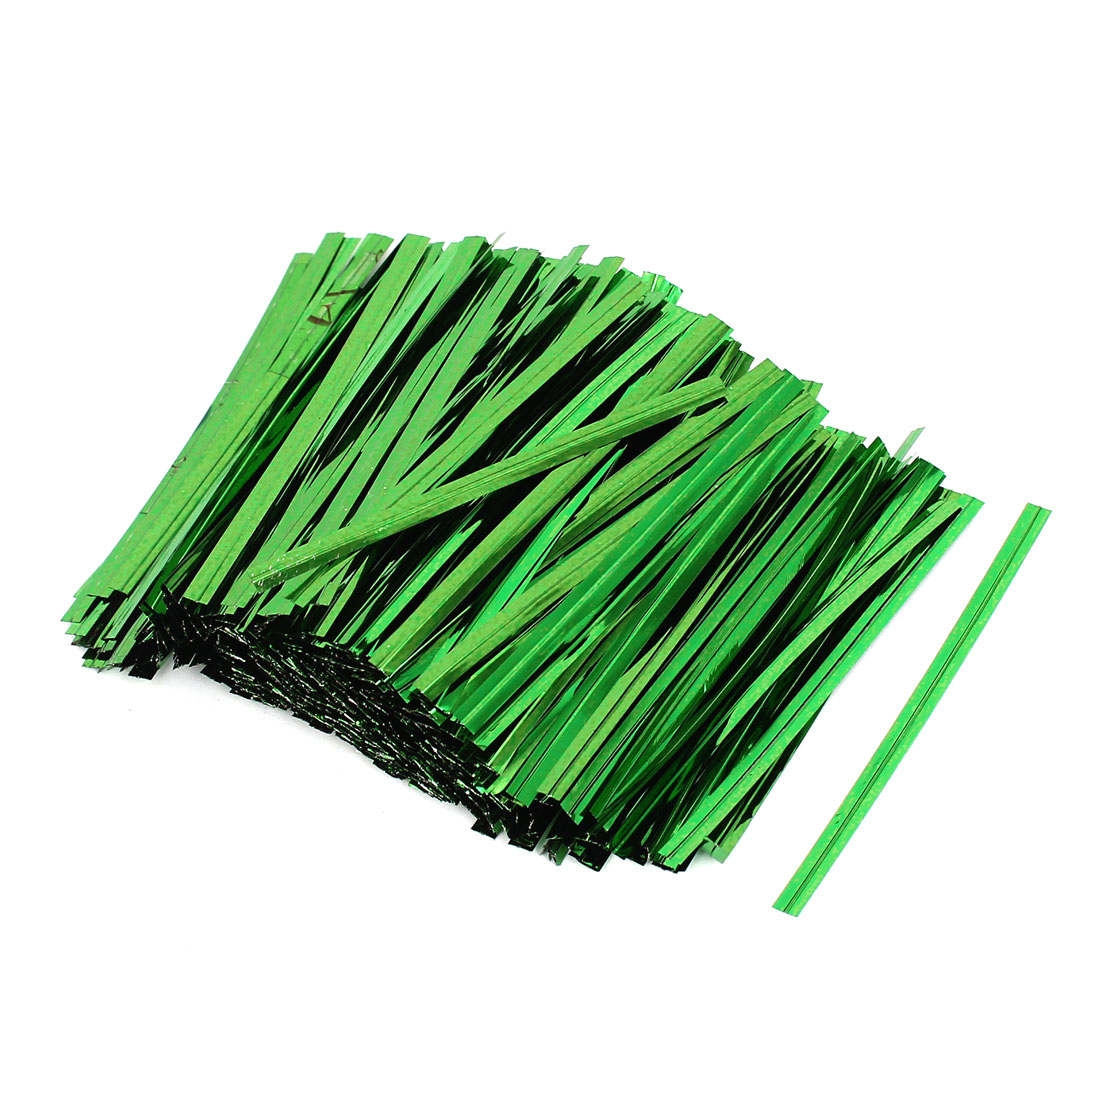 2400 Pcs Green 8cm Length Candy Bread Bags Packaging Twist Cable Tie